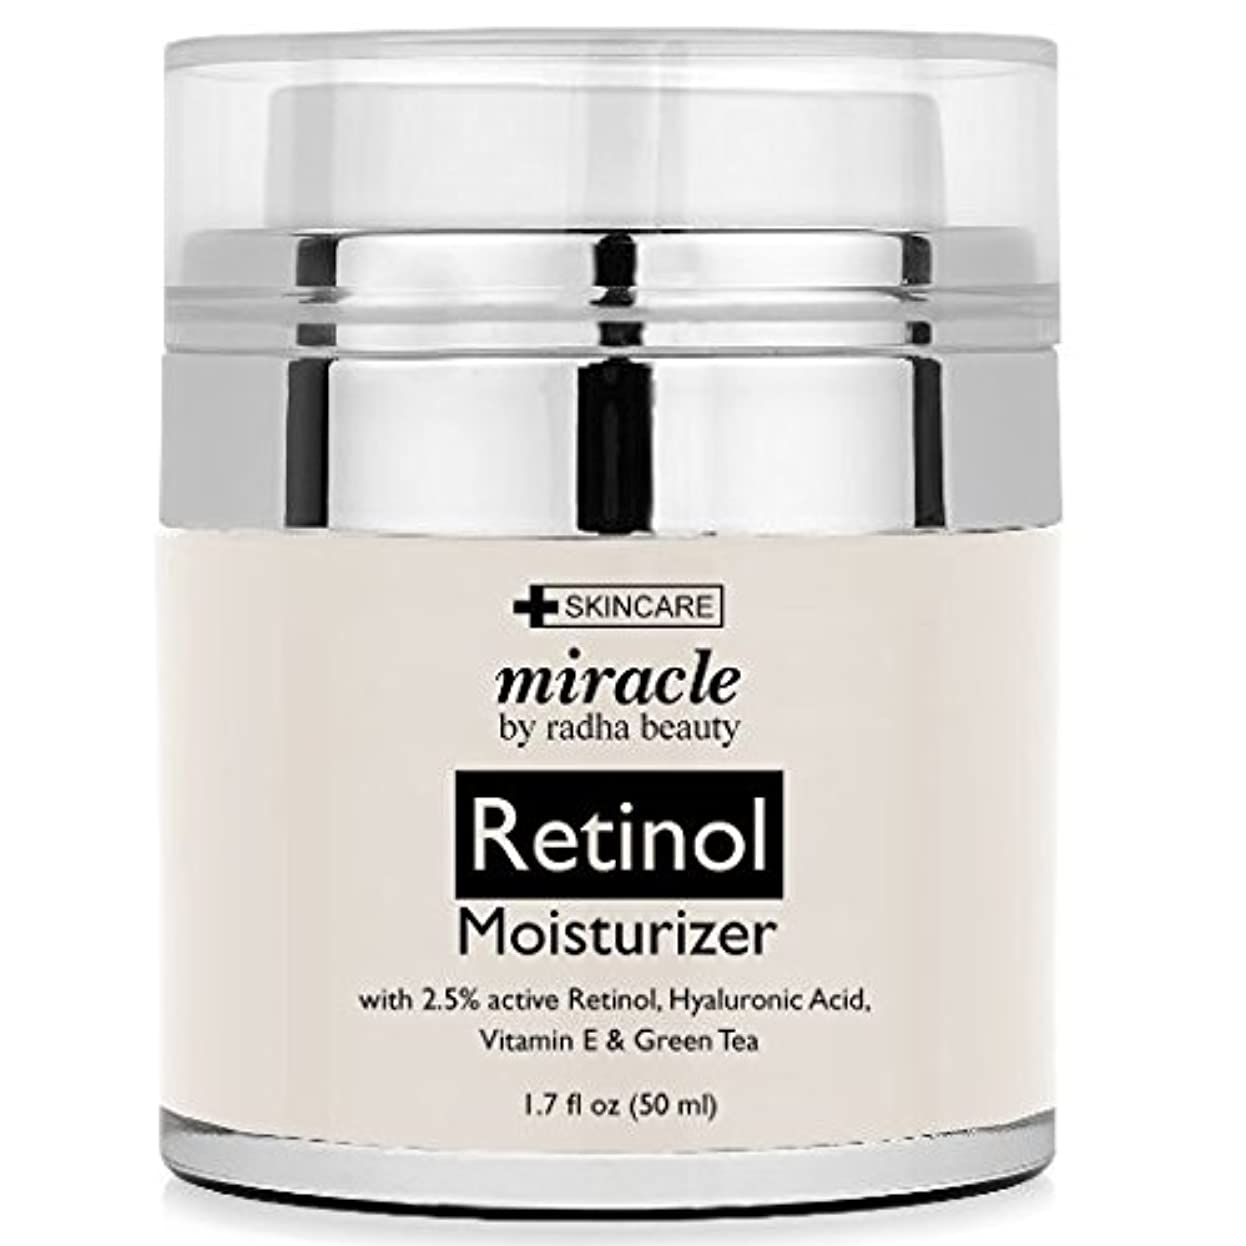 旧正月橋生き残りレチノール 保湿クリーム Retinol Moisturizer Cream for Face - With Retinol, Hyaluronic Acid, Tea Tree Oil and Jojoba Oil、 ...